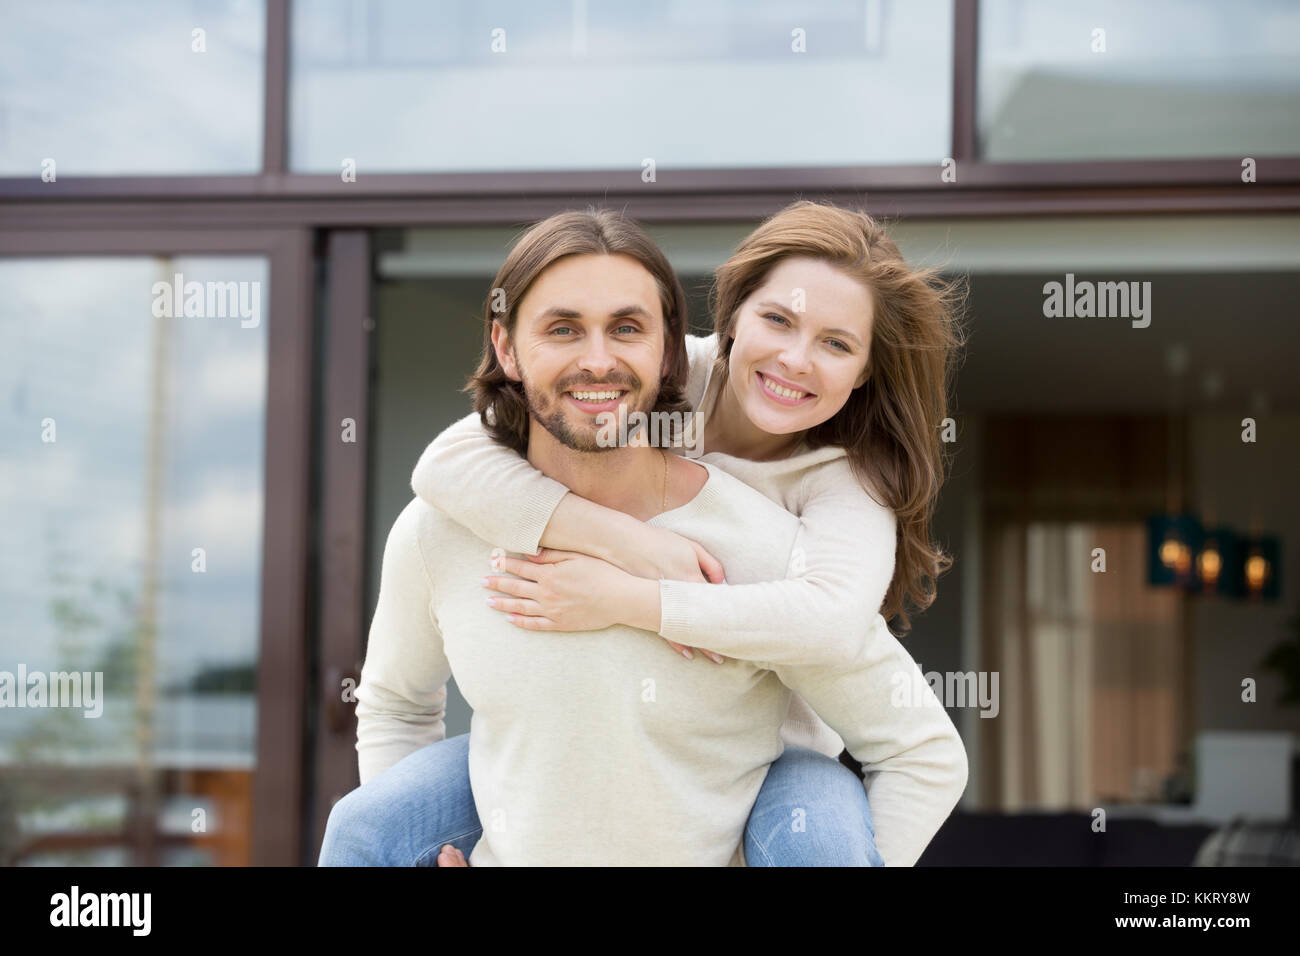 Man holding woman on back outdoors, looking at camera, portrait - Stock Image